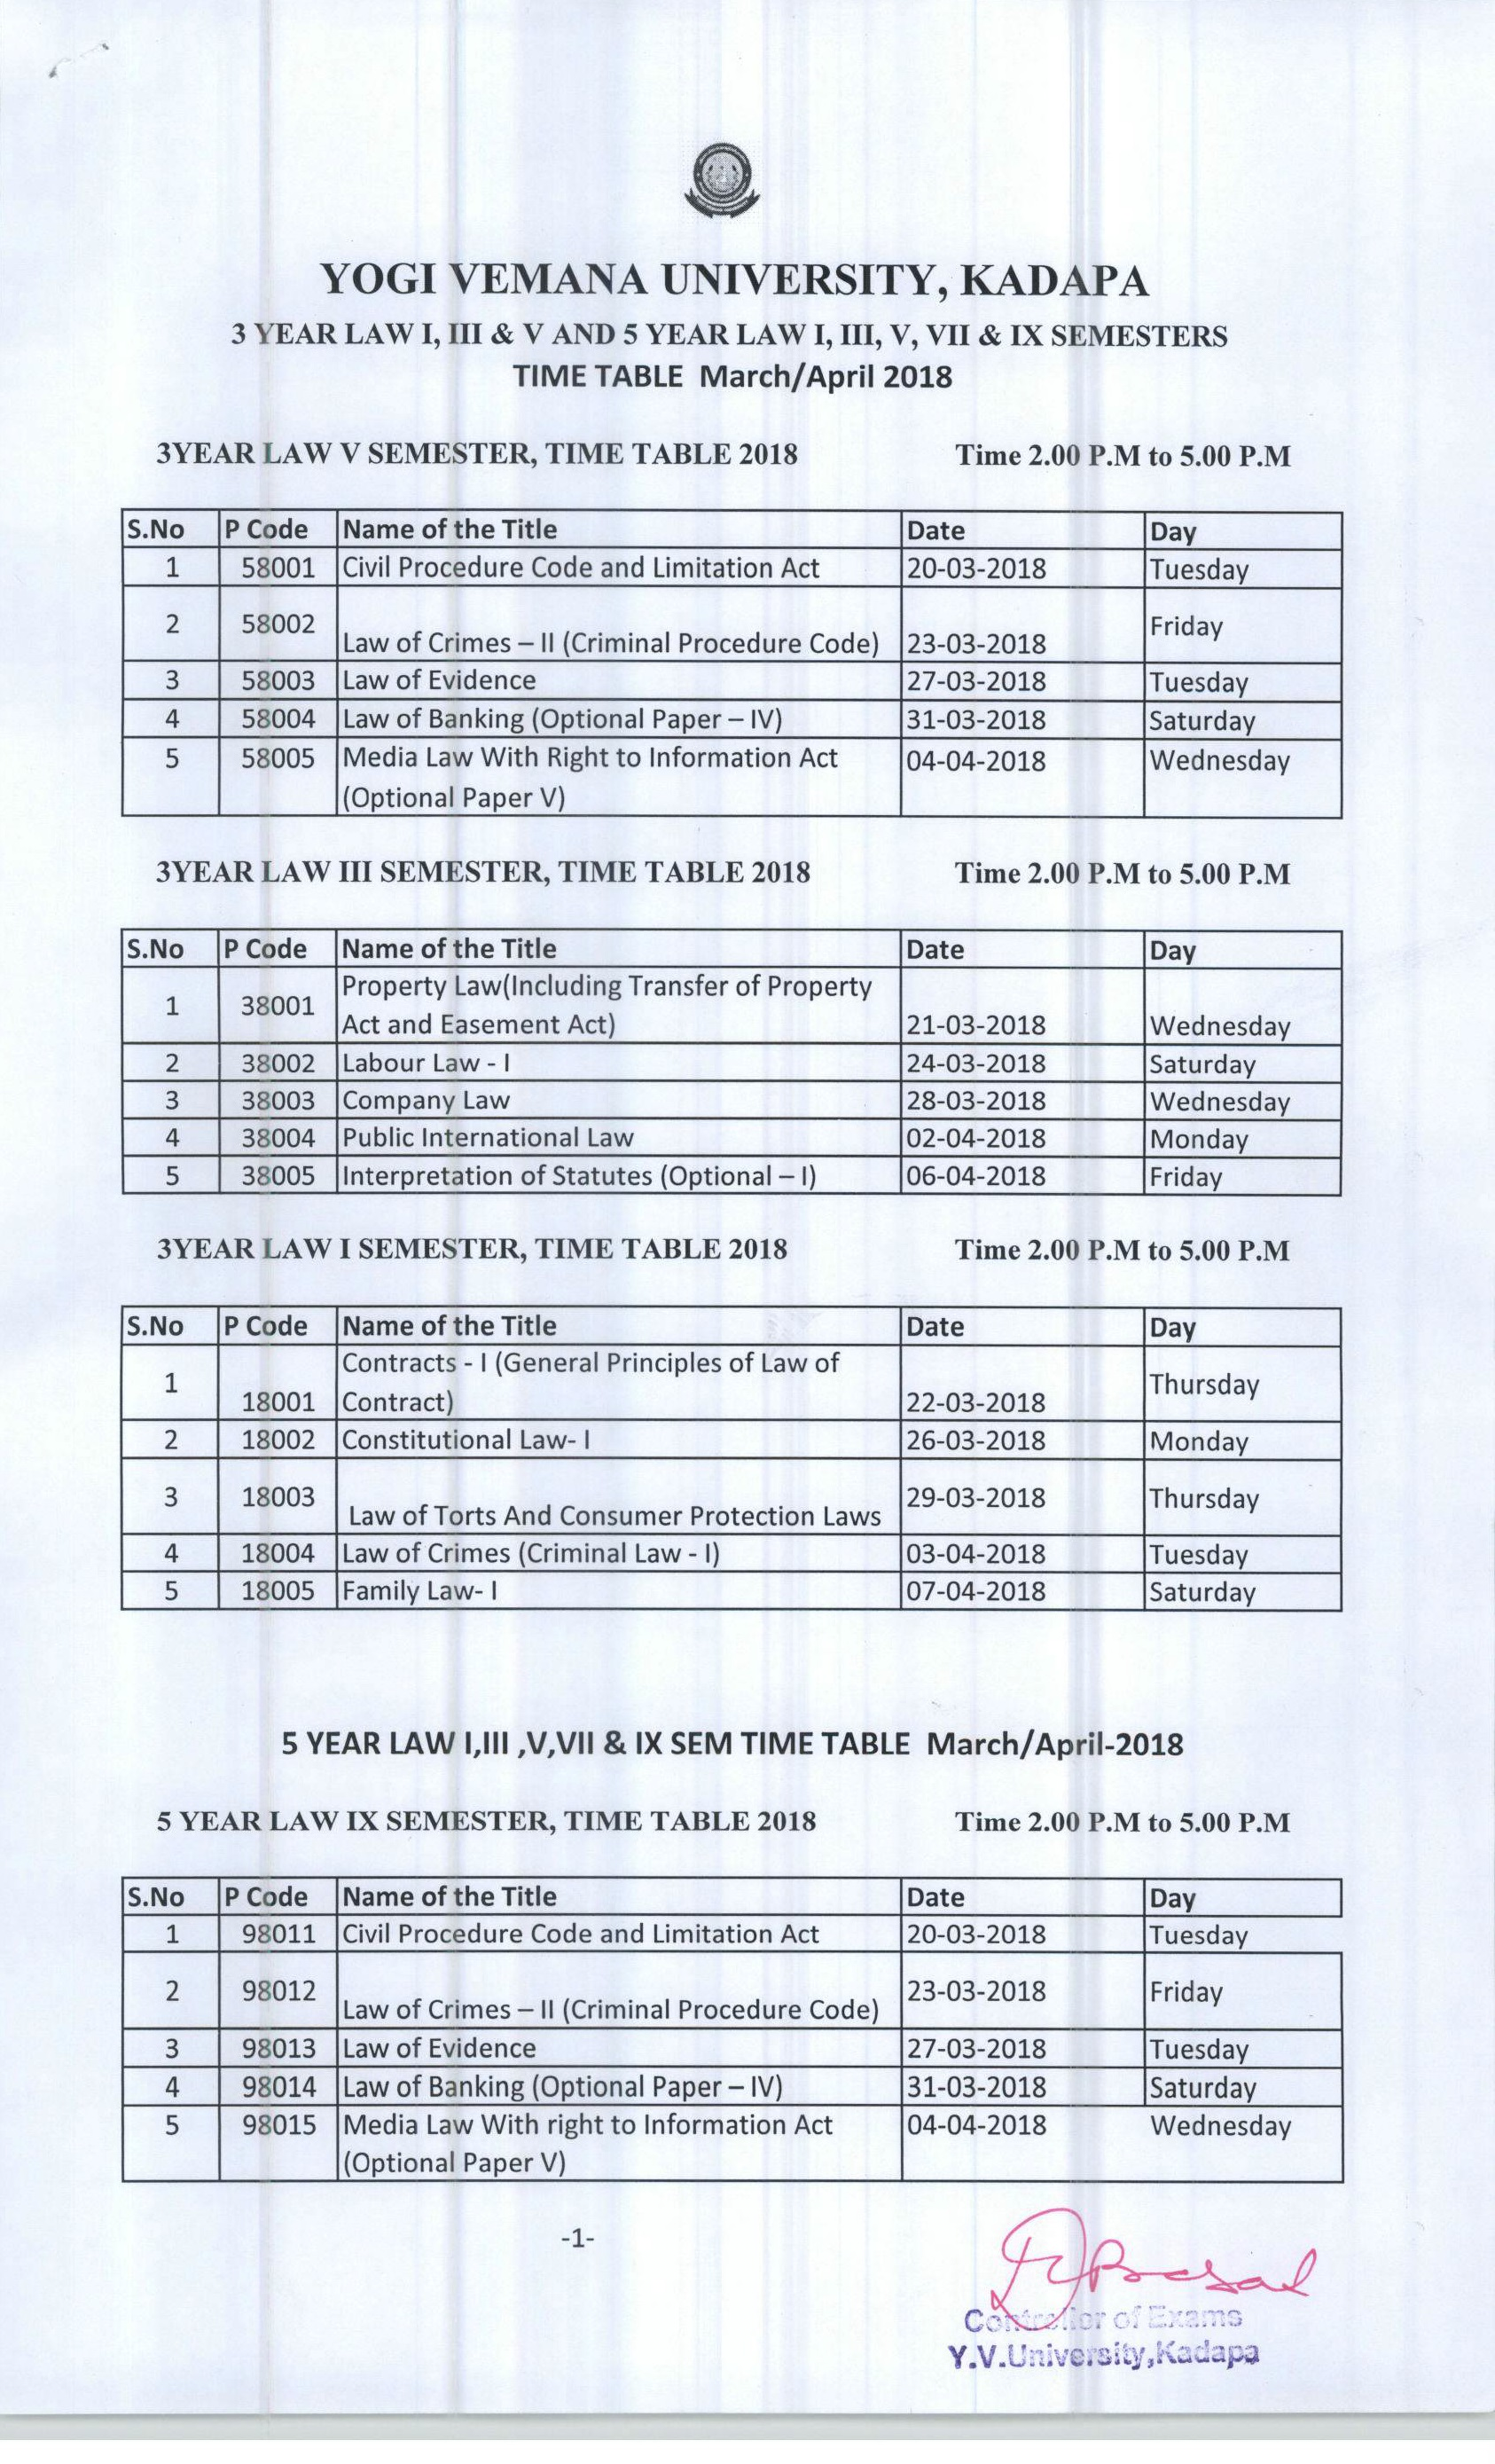 3 and 5 Year Law Time Table